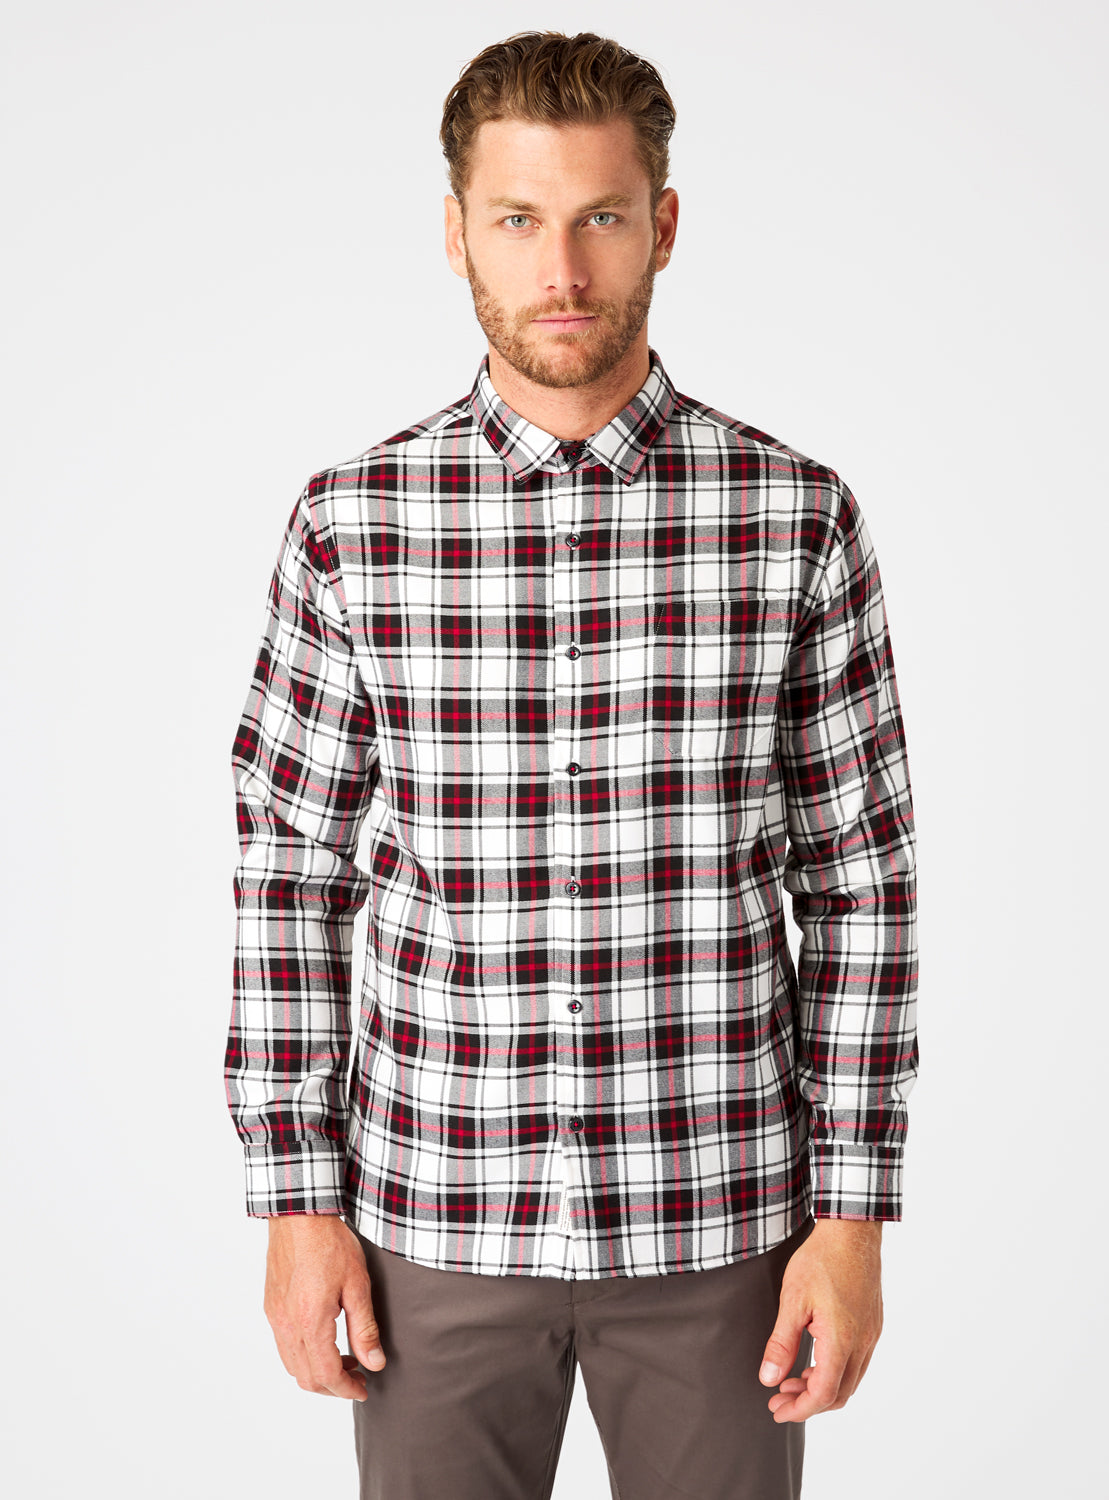 Sequoia Single Pocket Flannel Shirt